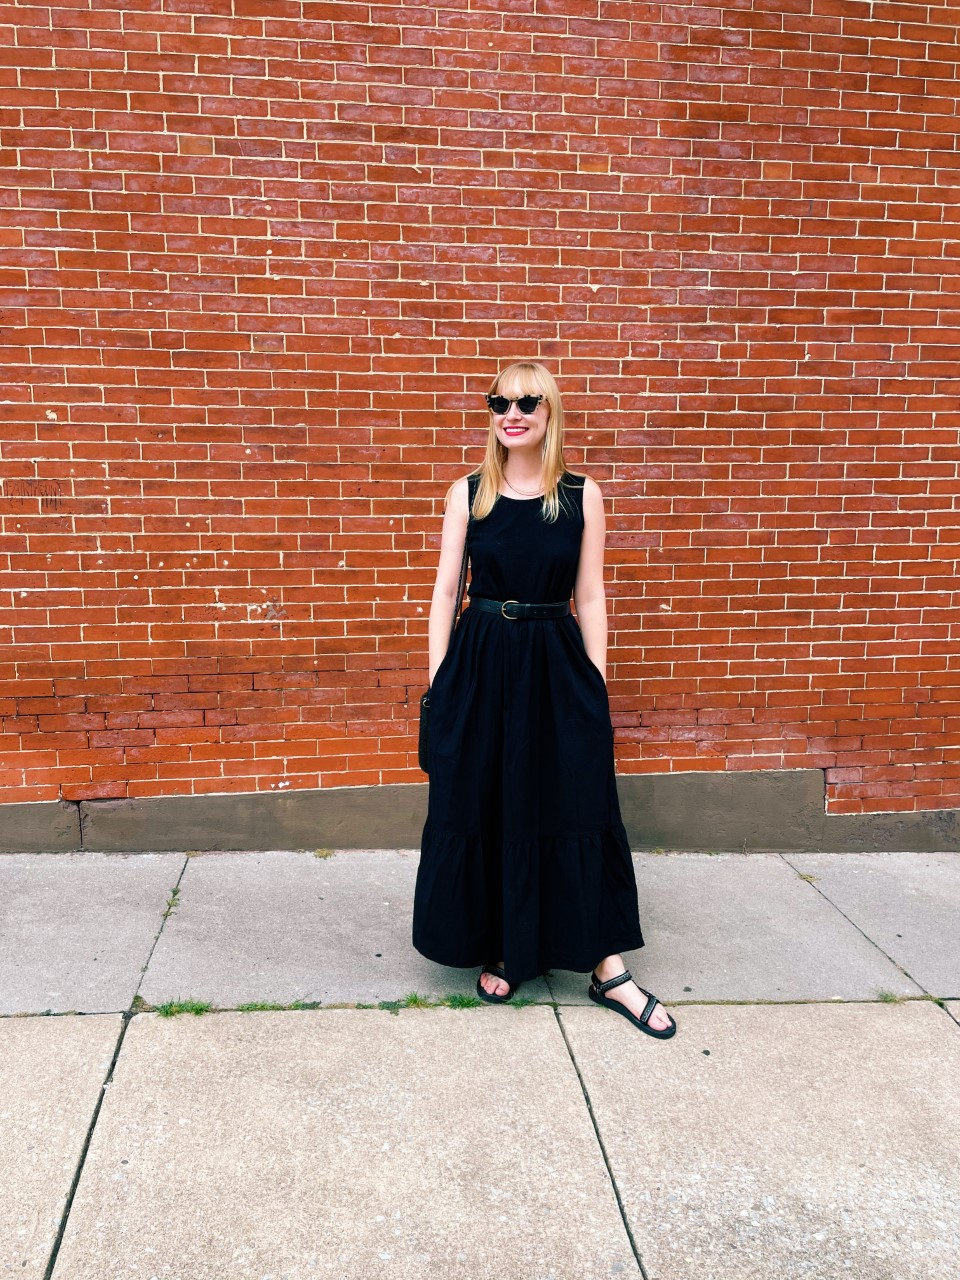 Styling a Black Maxi Dress for Summer   Organized Mess